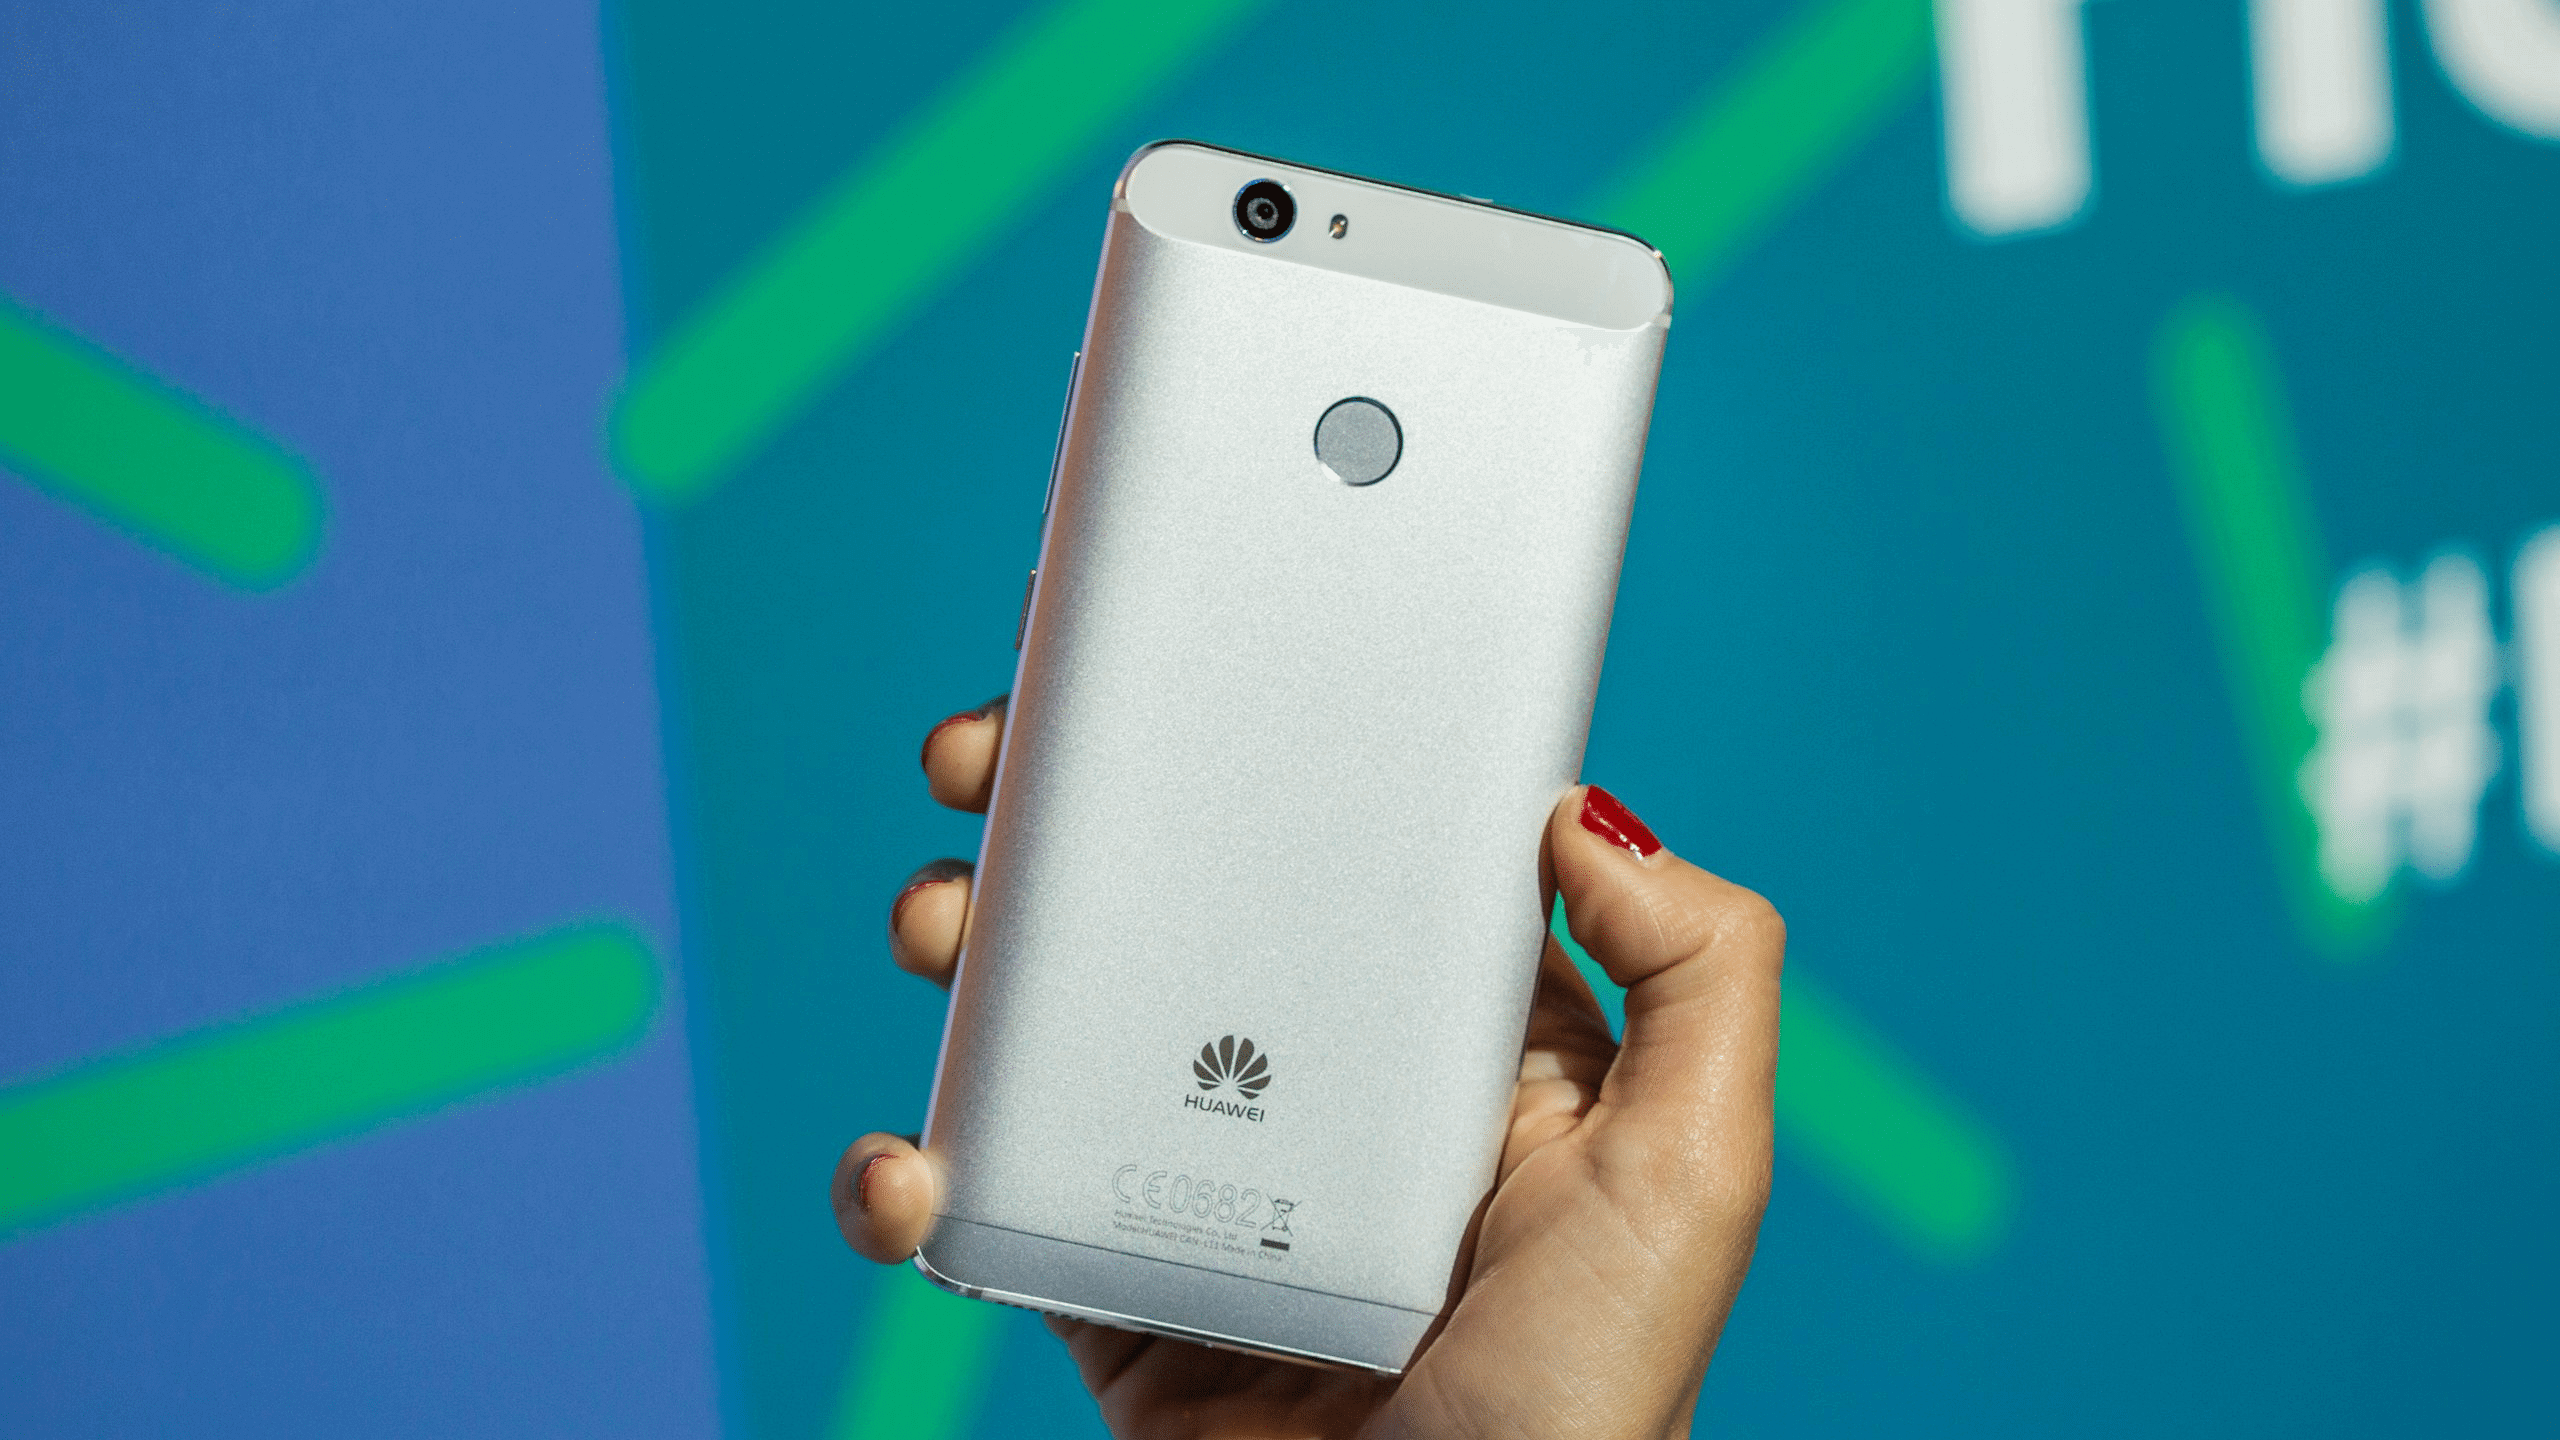 Install B340 Official Update Android 7.0 Nougat On Huawei Nova CAN-L01/CAN-L11 1